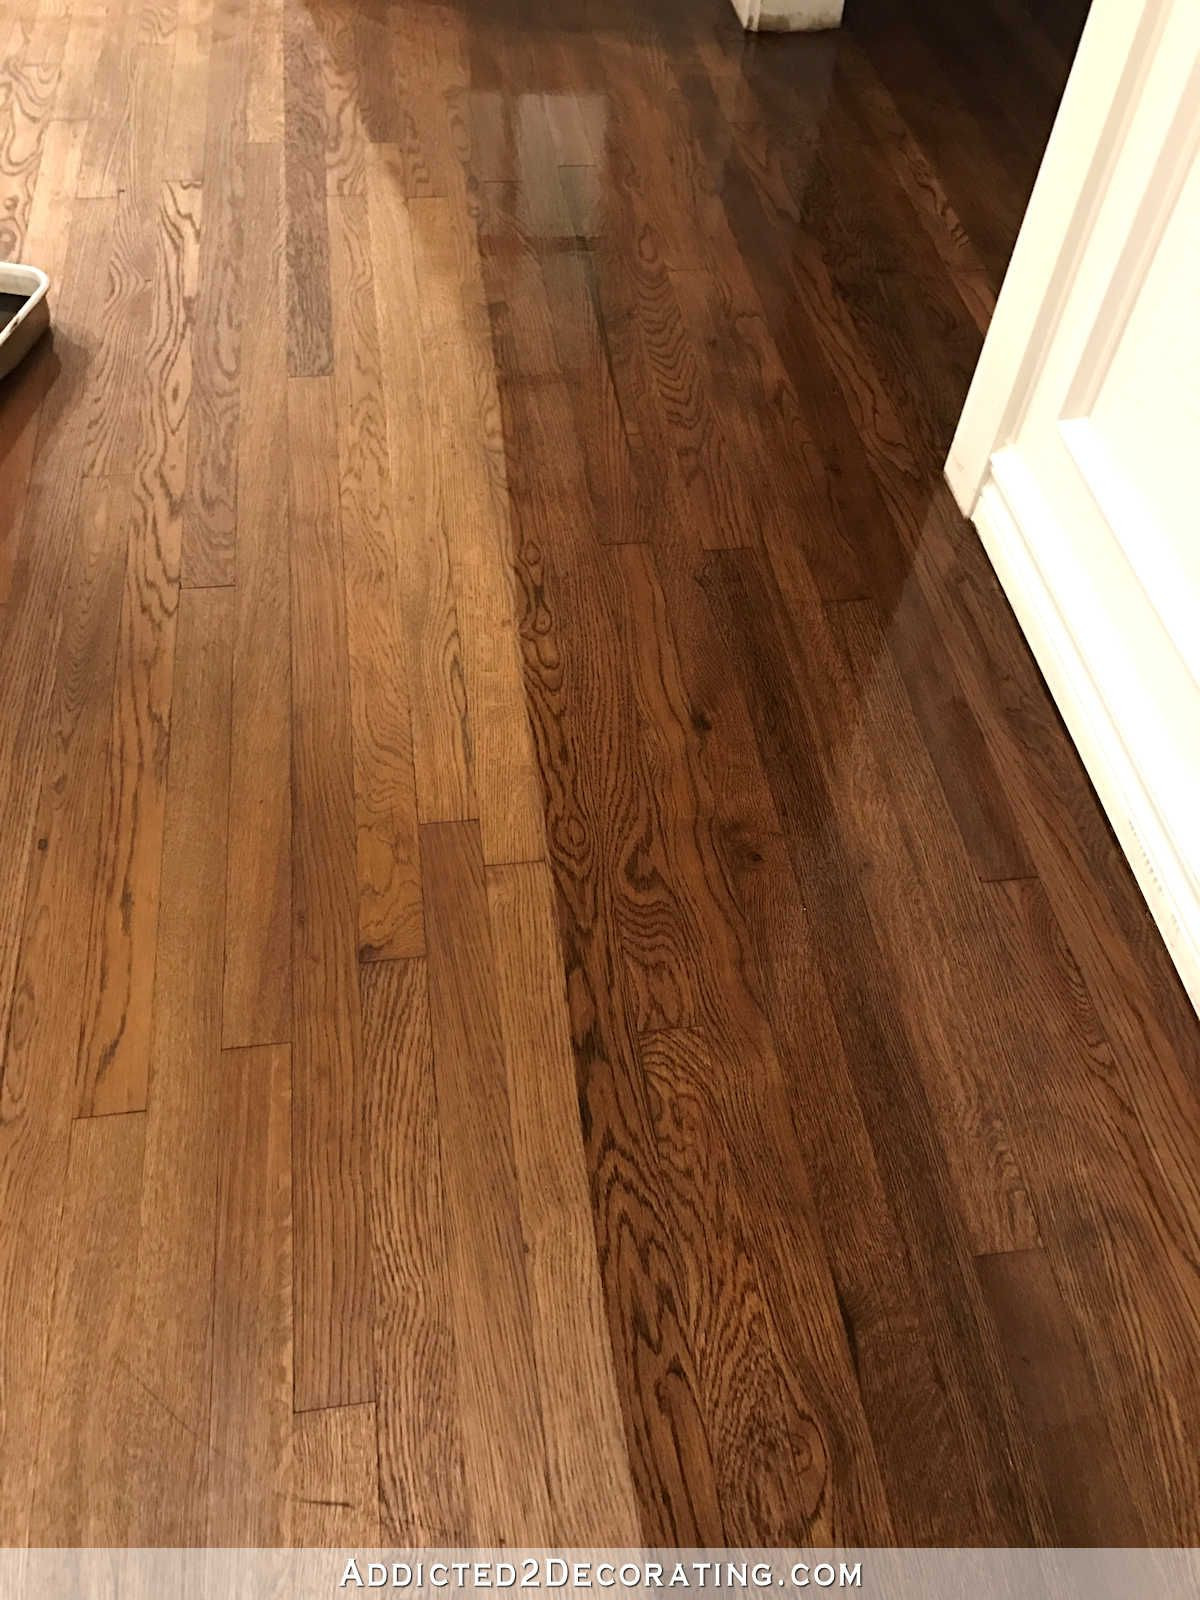 hardwood floor refinishing machine of floor refinishing company hardwood floors service by cris floor inside floor refinishing company the hardwood floor refinishing adventure continues tip for getting